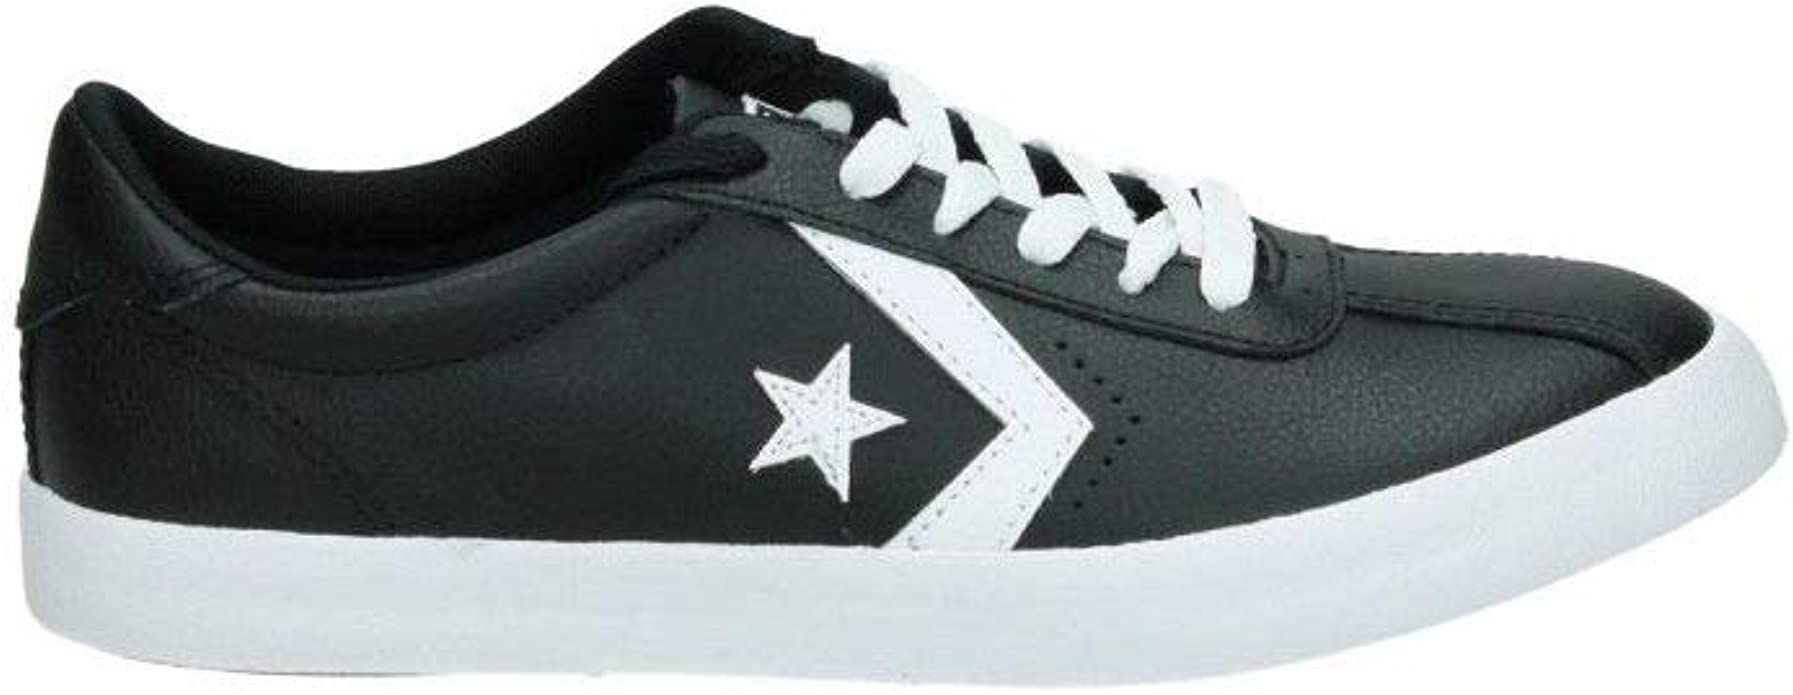 kids black and white converse